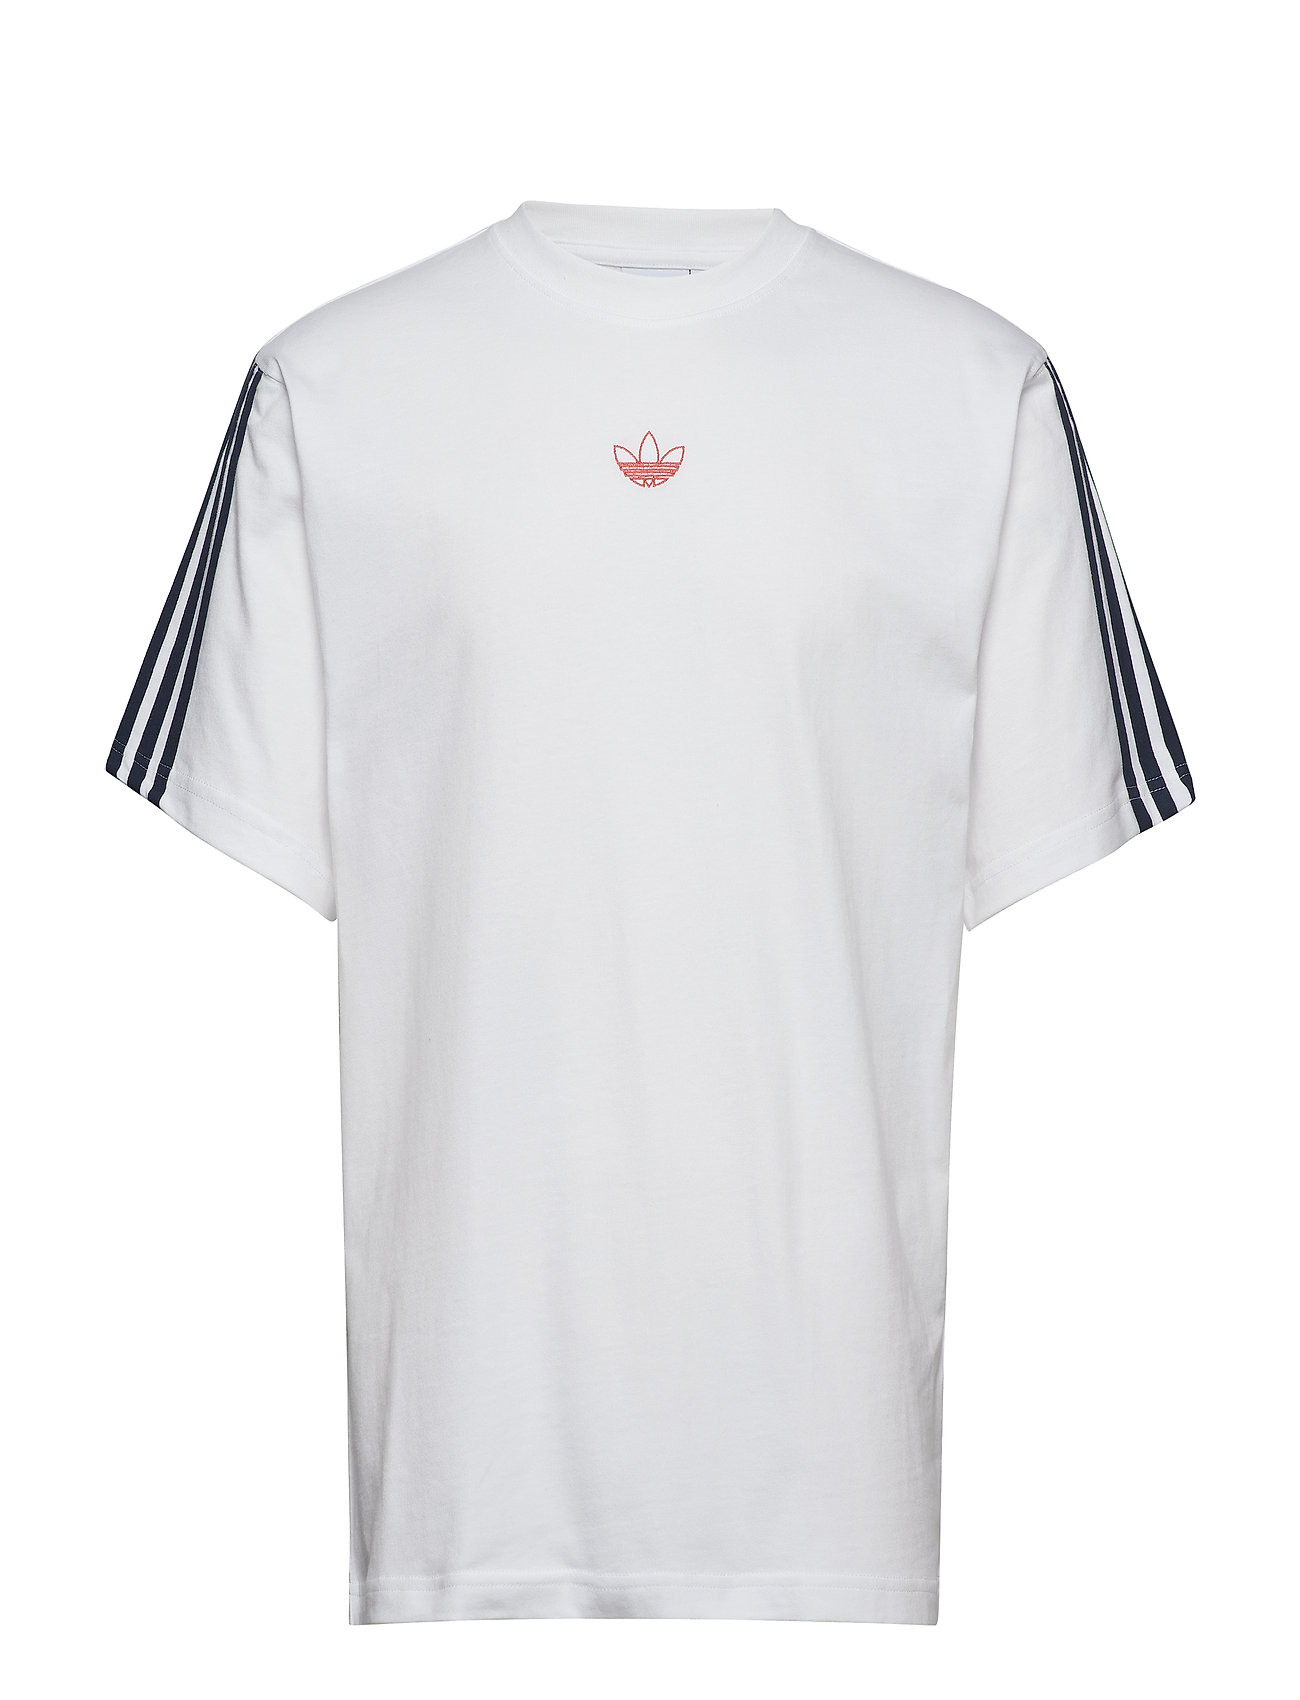 adidas FLOATING T Shirt